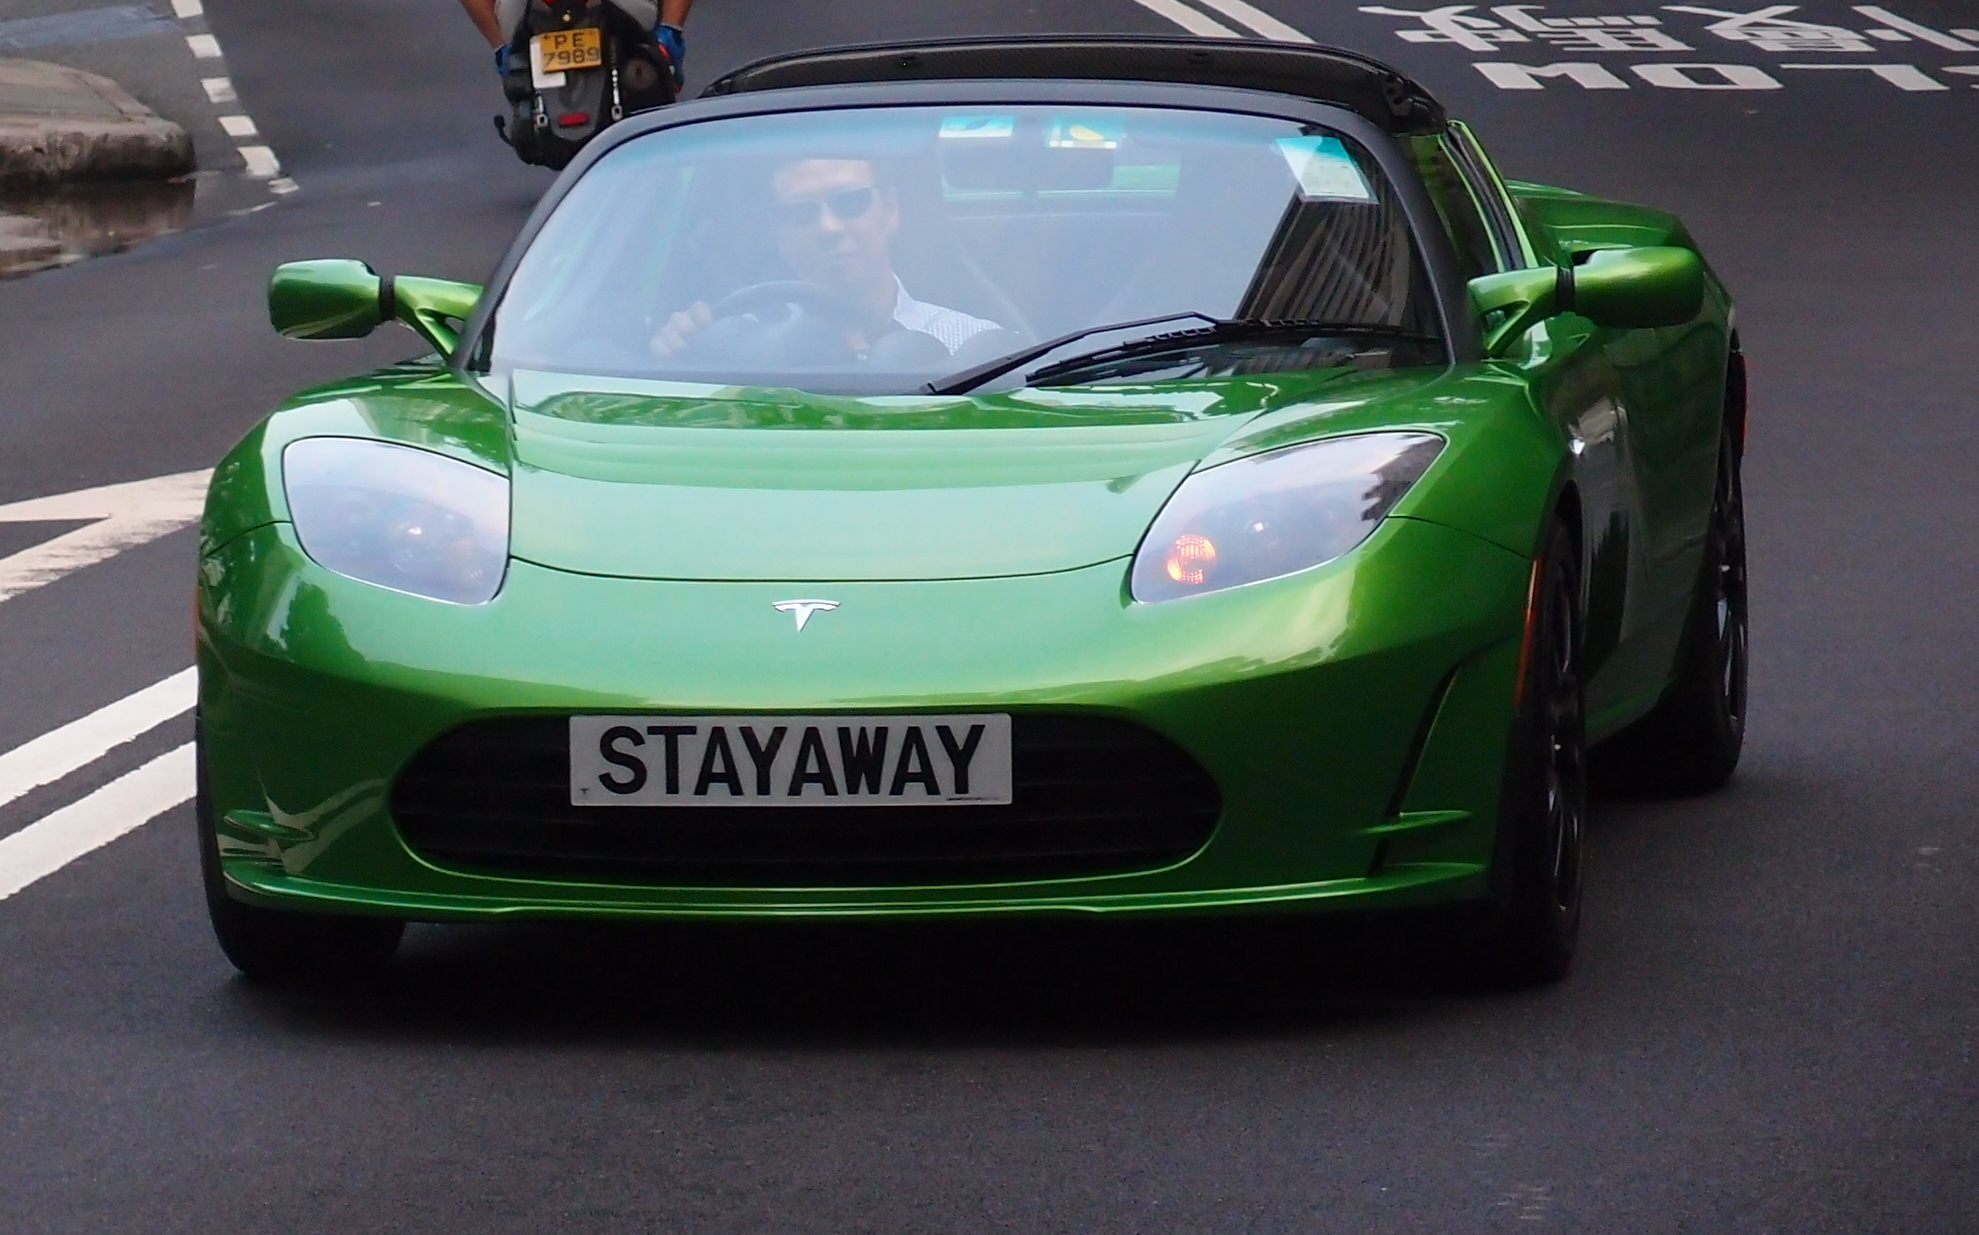 I hate plug in cars and I hate this little Tesla sport's car, the number plate is cool though